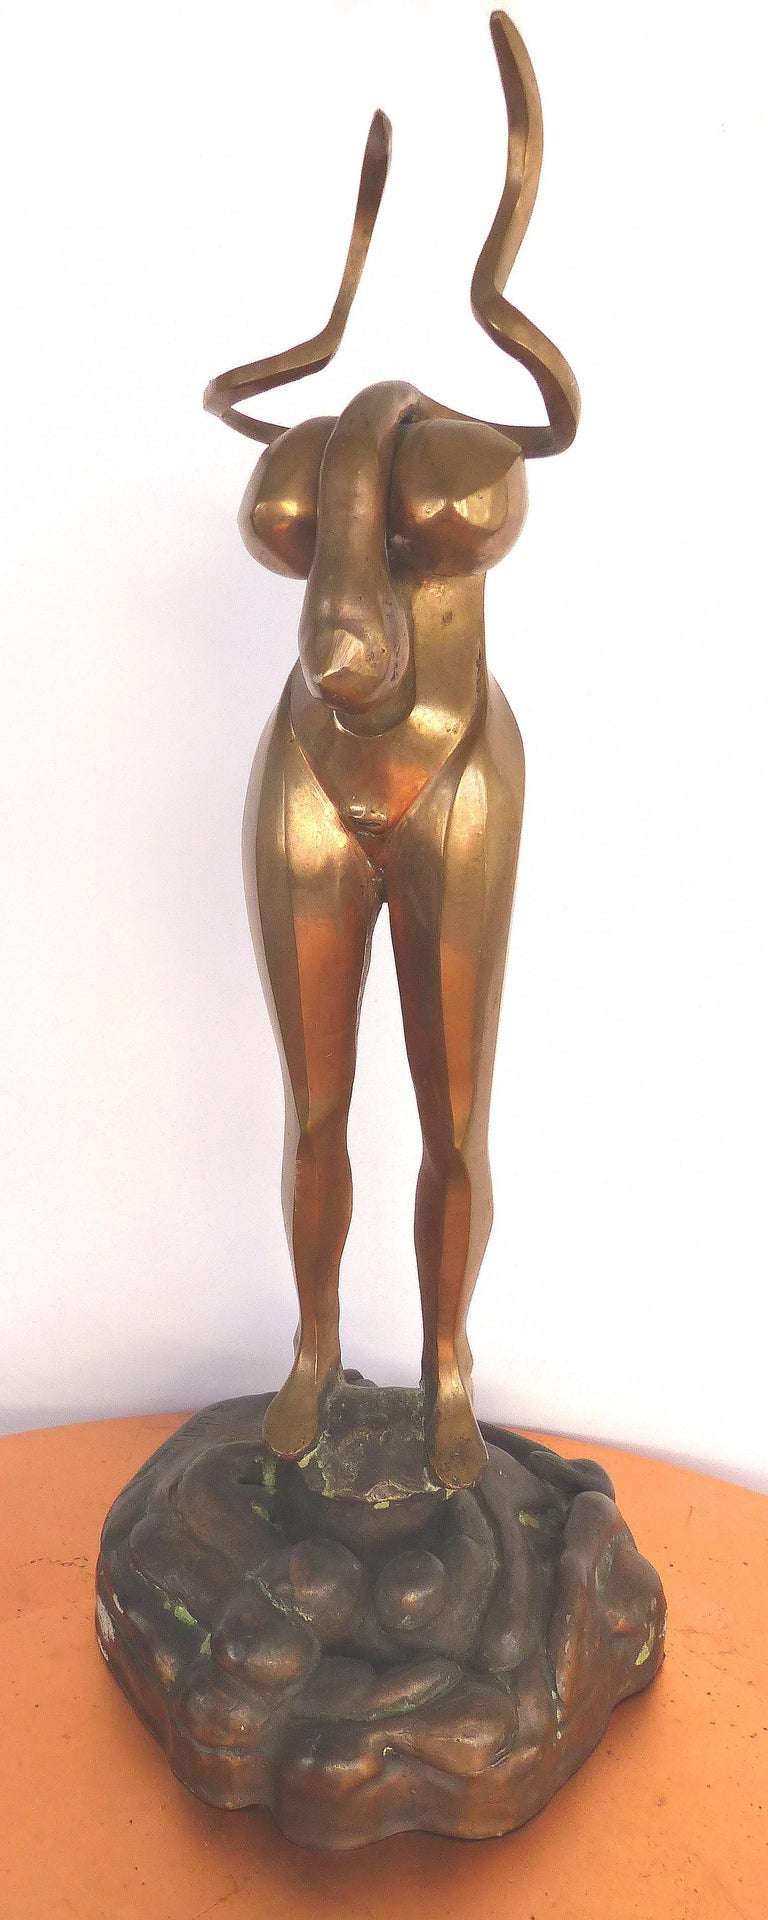 Surrealist Figurative Bronze Signed Zuñiga and Dated, 1977  Offered for sale is a rare estate find of a gilt and patinated bronze of a surrealist standing figure with grotesque features. Signed Zuñiga on the patinated base and dated 1977. As we are